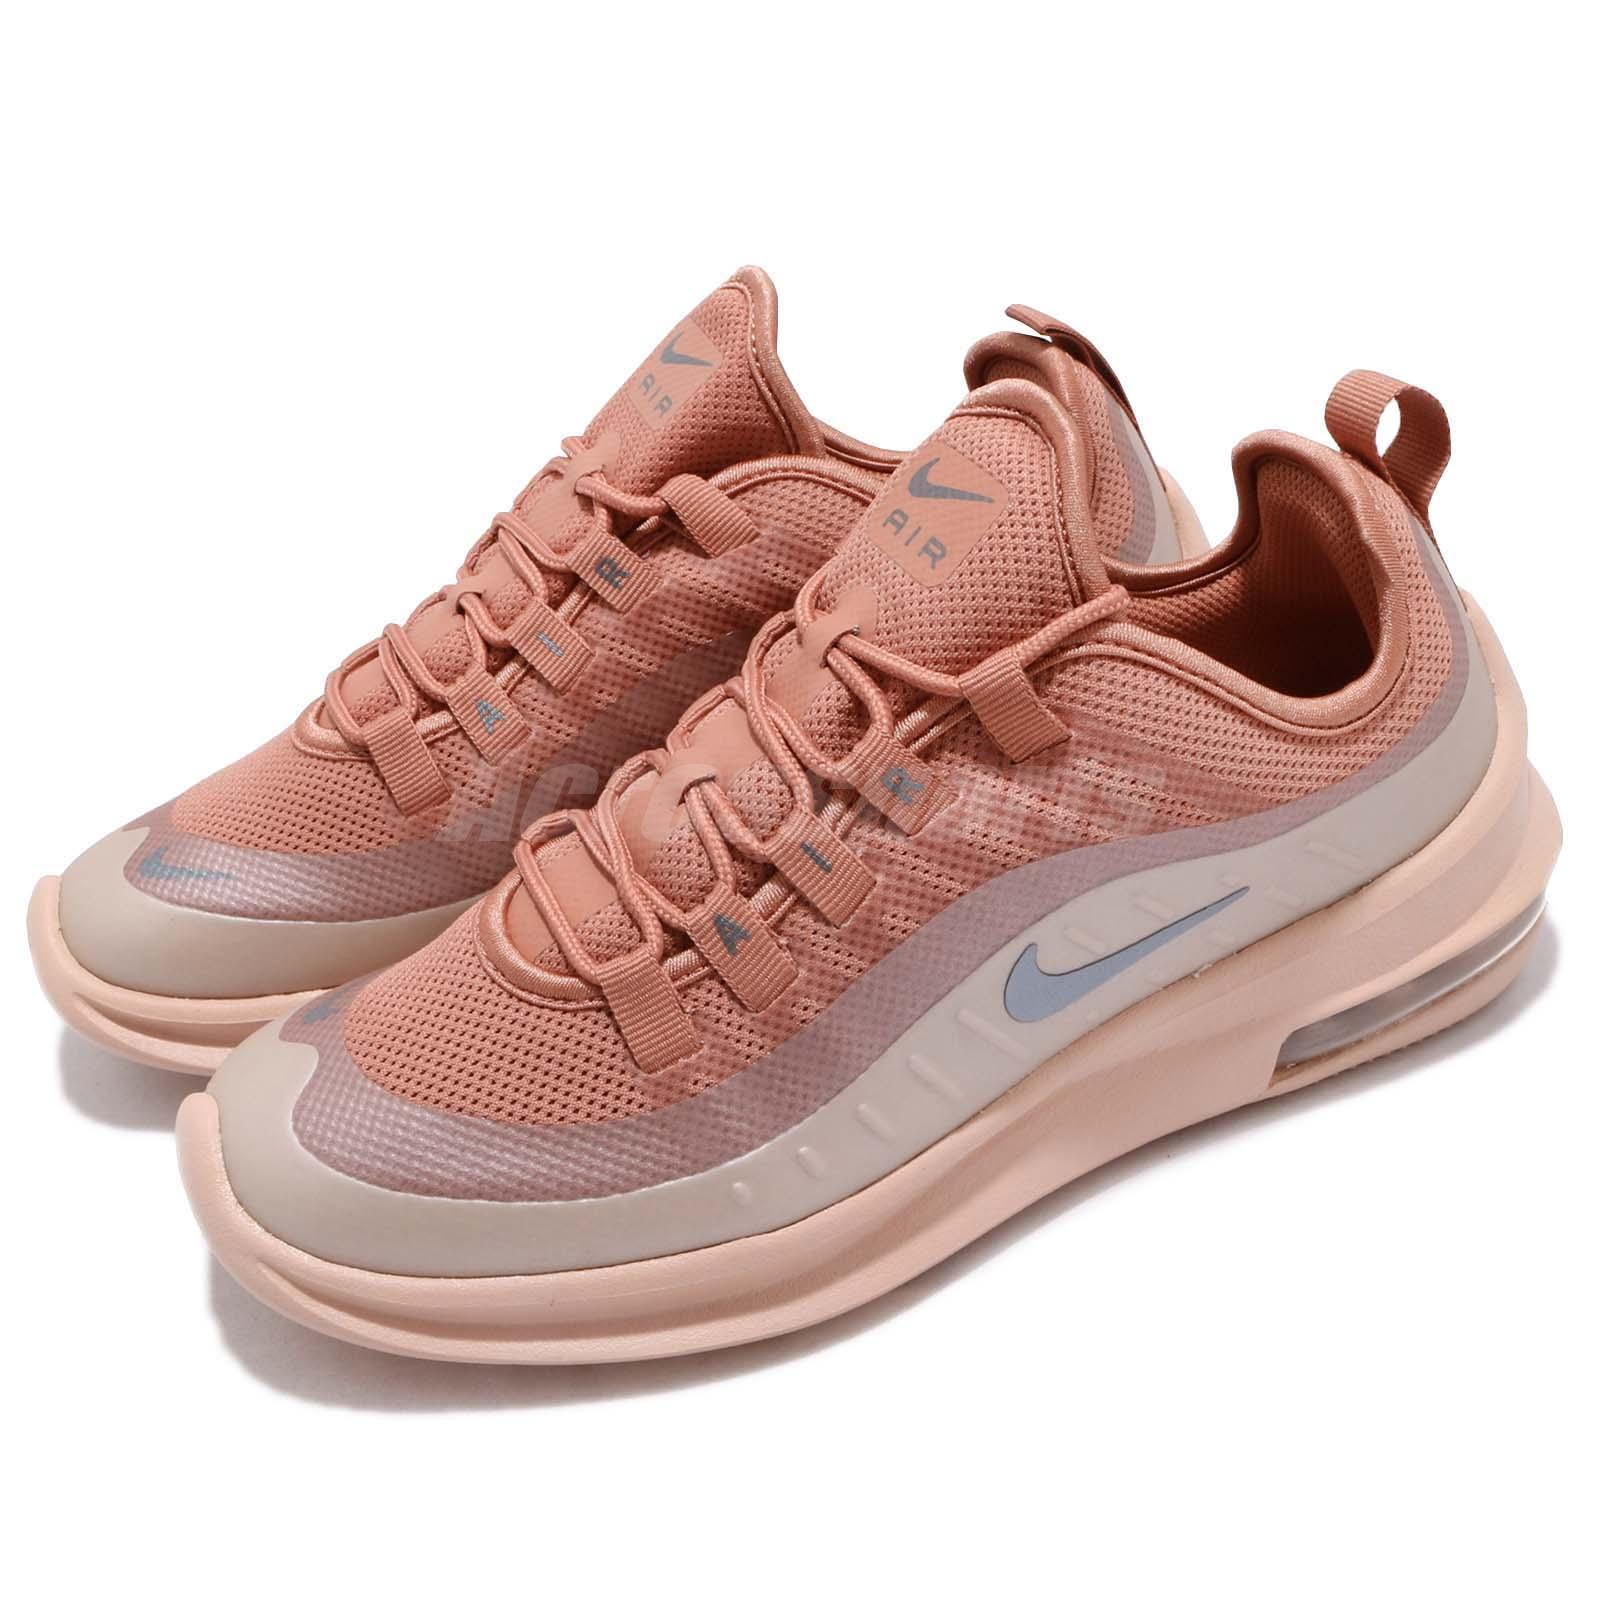 60ee9666ff Nike Wmns Air Max Axis Terra Blush Grey Women Running Shoes Sneakers ...